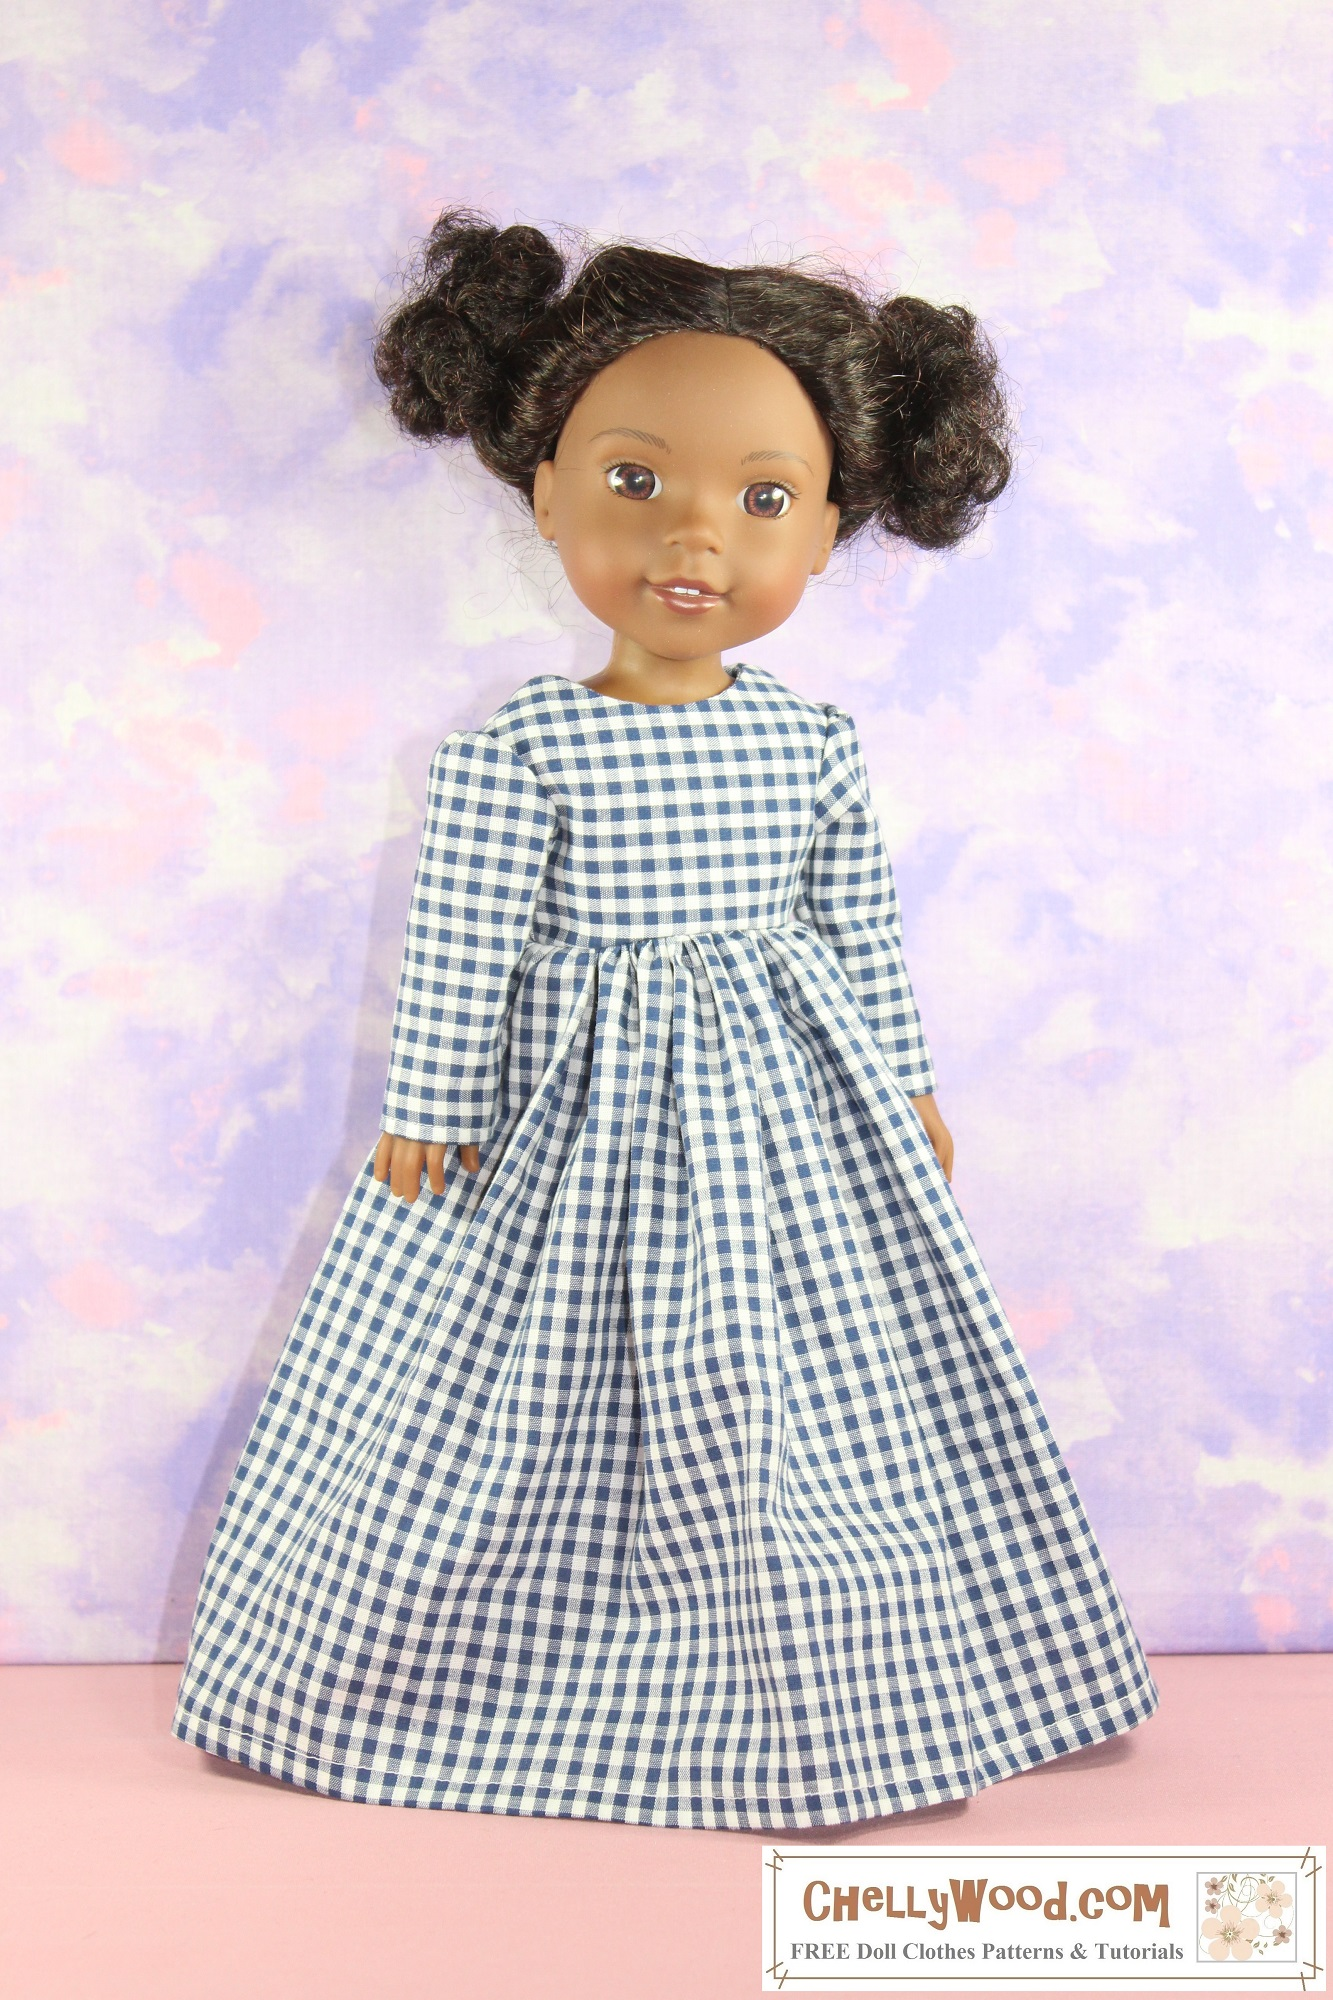 Here we see a Wellie Wishers (Kendall) doll modeling a pretty blue gingham dress with a simple scoop neck, long sleeves that are slightly puffy at the top of the sleeve, and a long gathered skirt. Would you like to make this lovely Victorian-era dress for your 14 to 15 inch doll? Click on the link in the caption to navigate over to the page that has all the patterns and tutorial videos for sewing this beautiful dress.